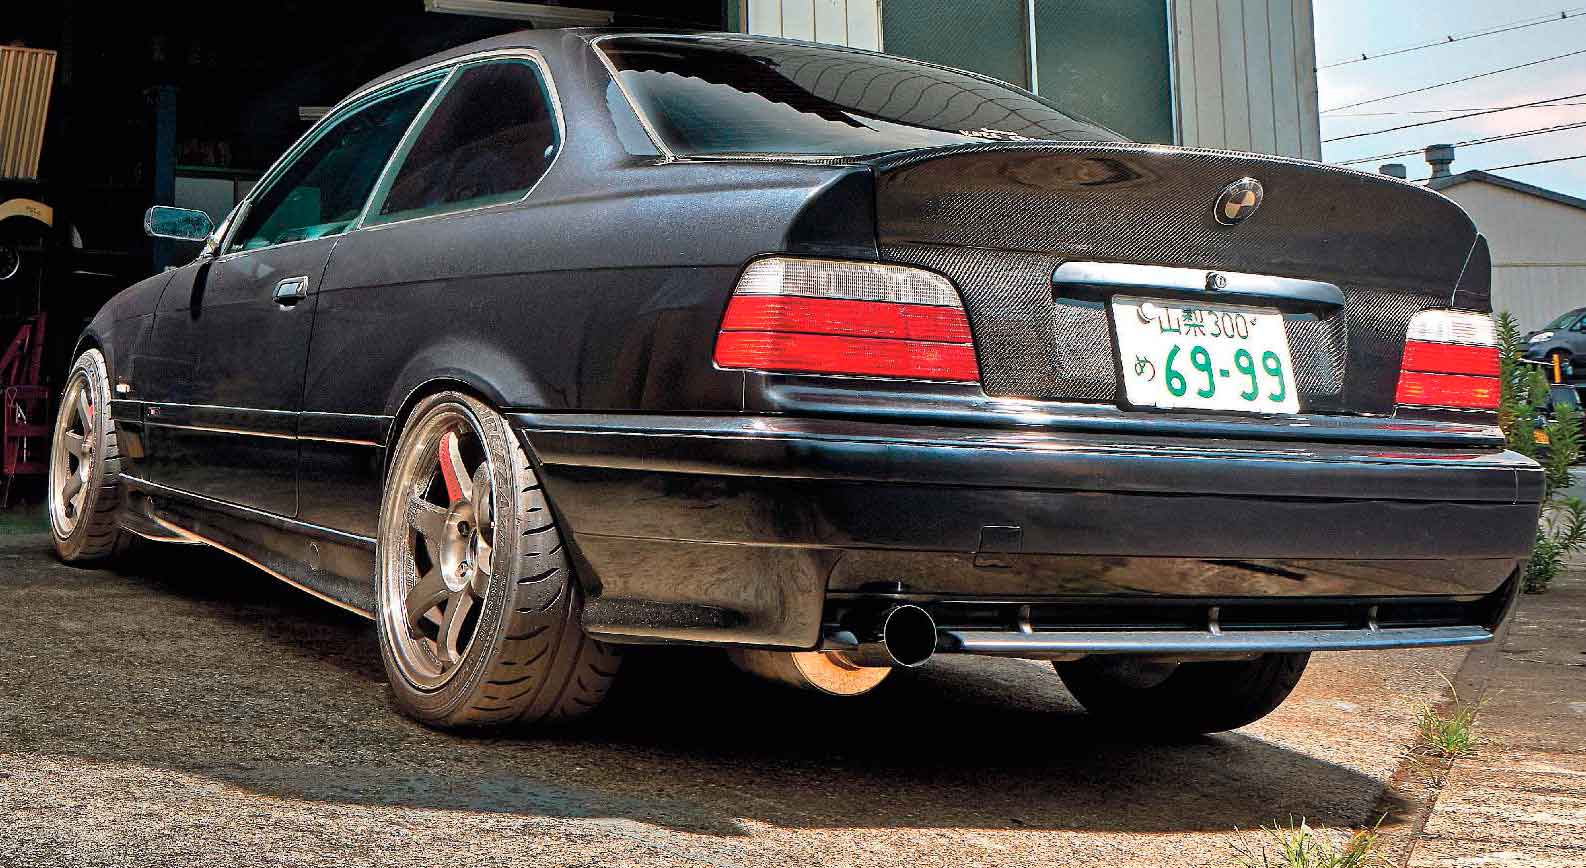 2 4 Litre 240bhp S14 Swapped Bmw E36 Coupe From Japan Drive My Blogs Drive